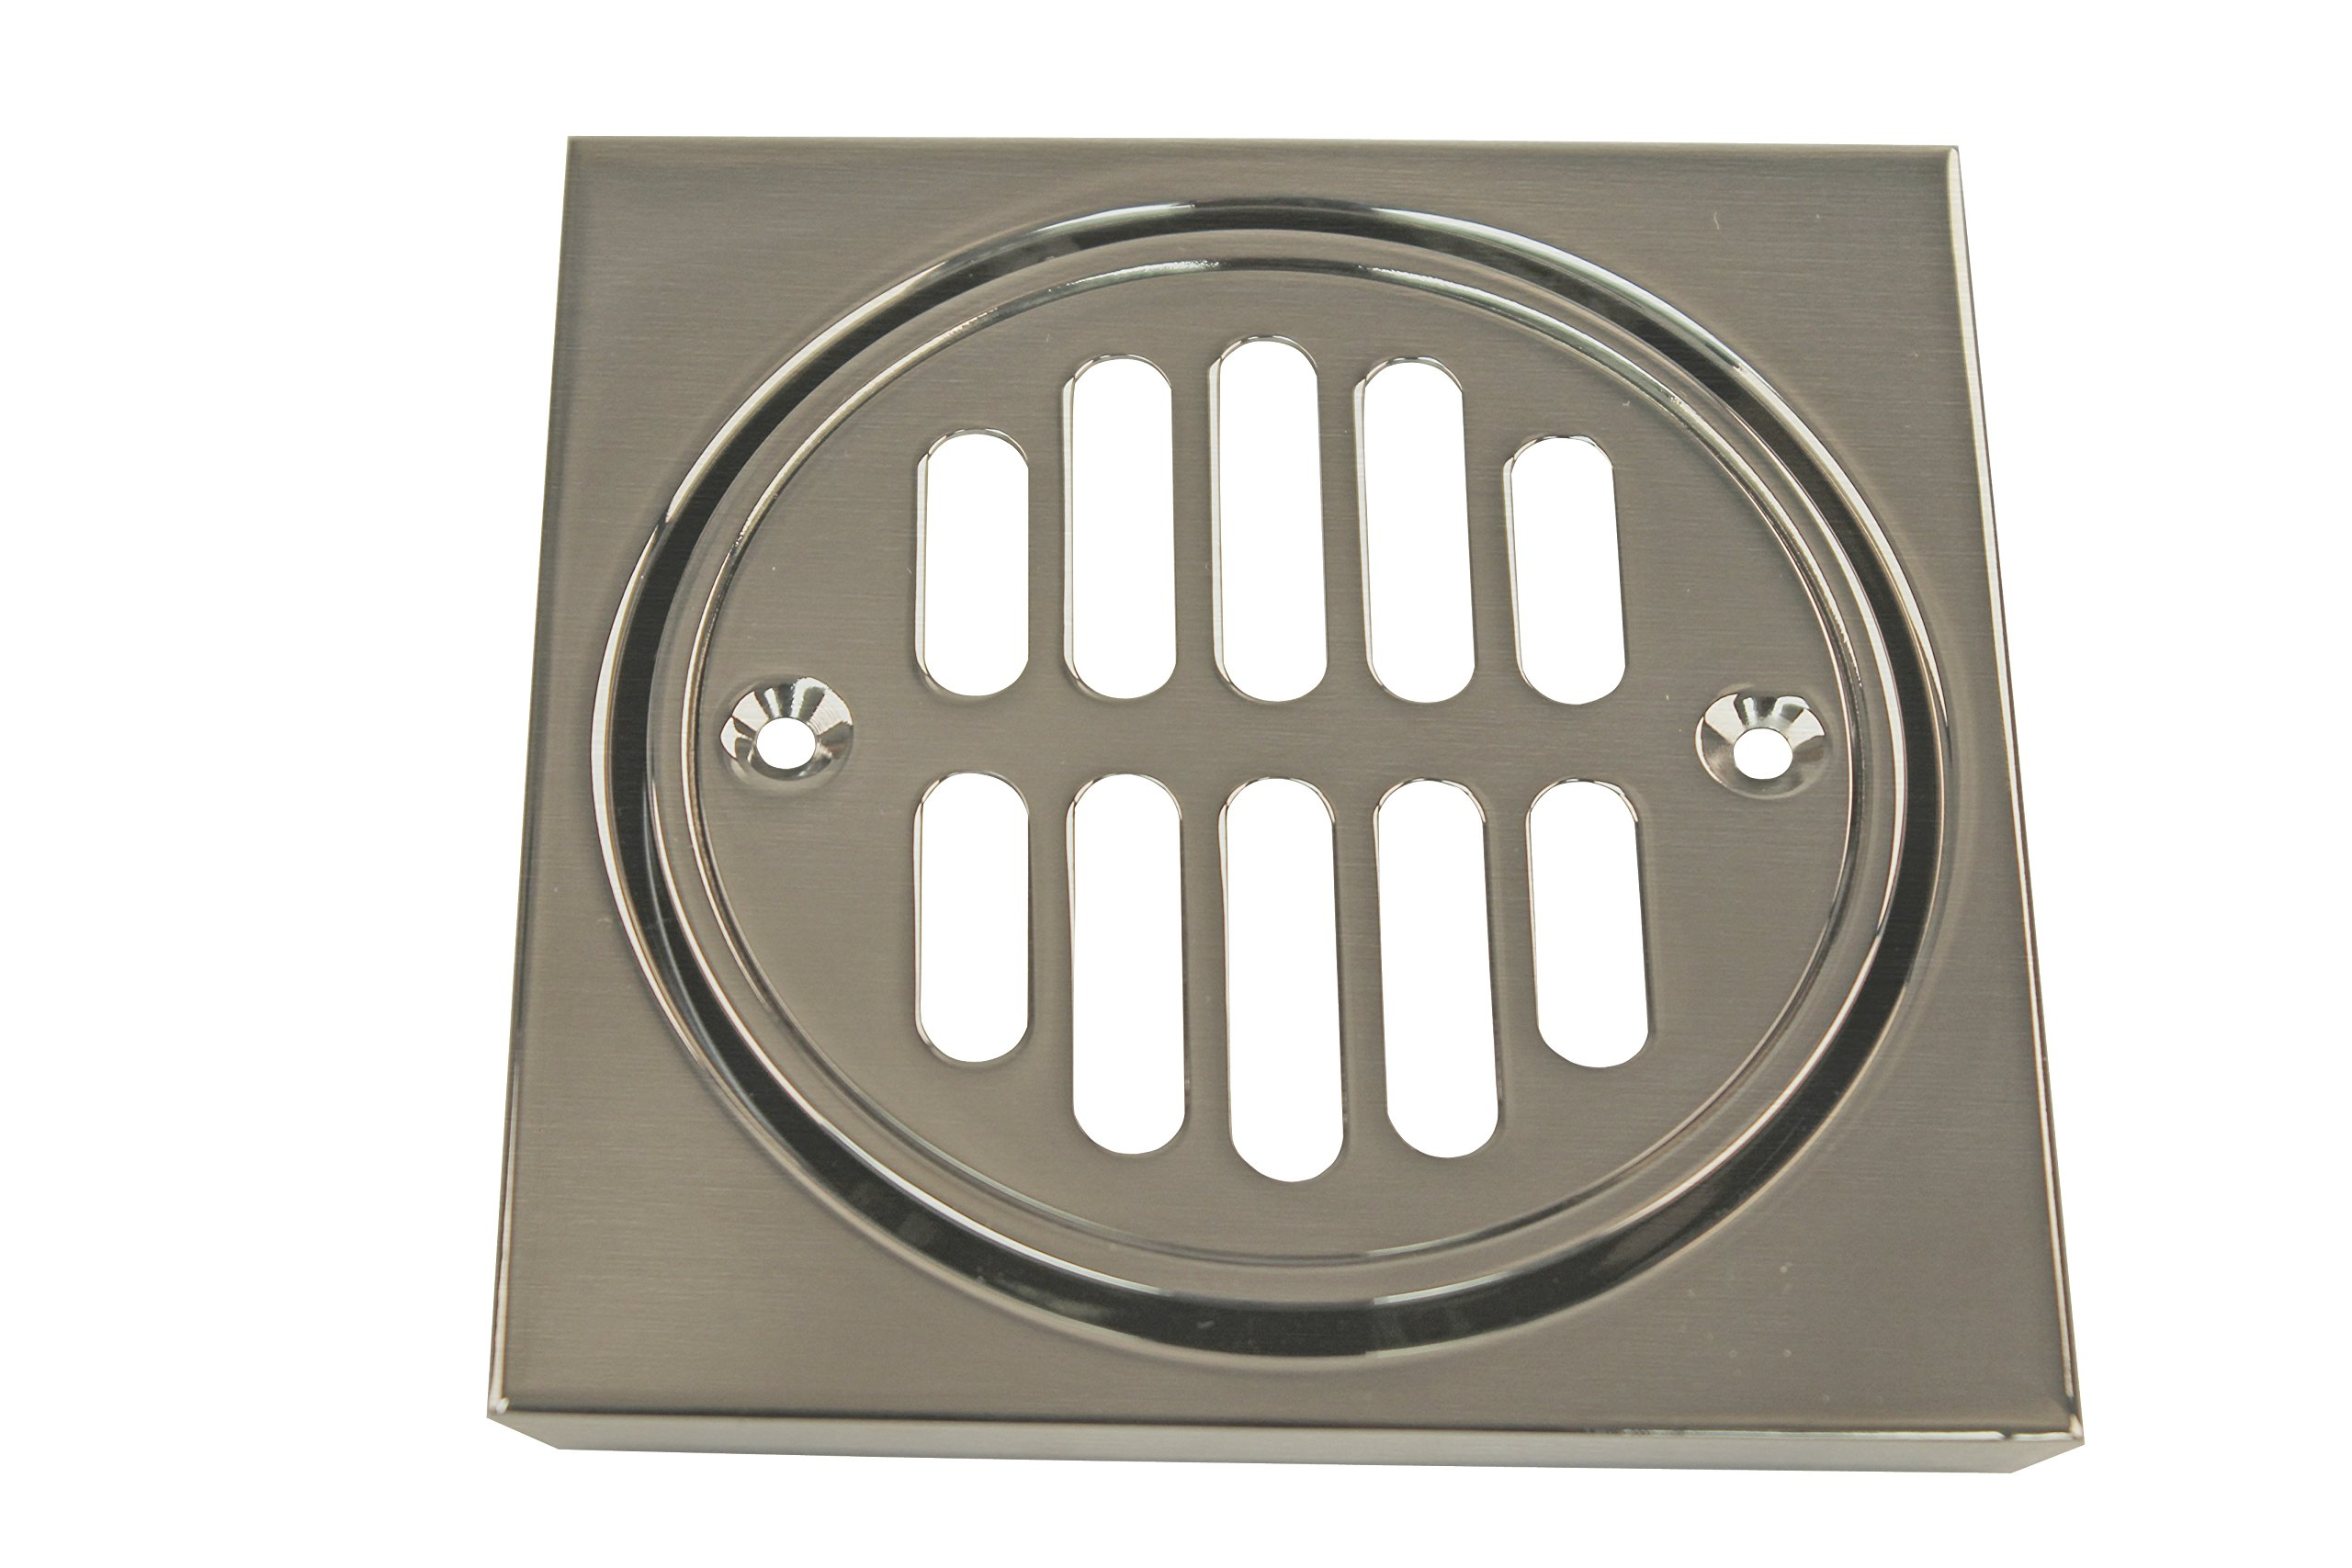 Westbrass Shower Strainer Set Square with Crown, Satin Nickel, D313-07